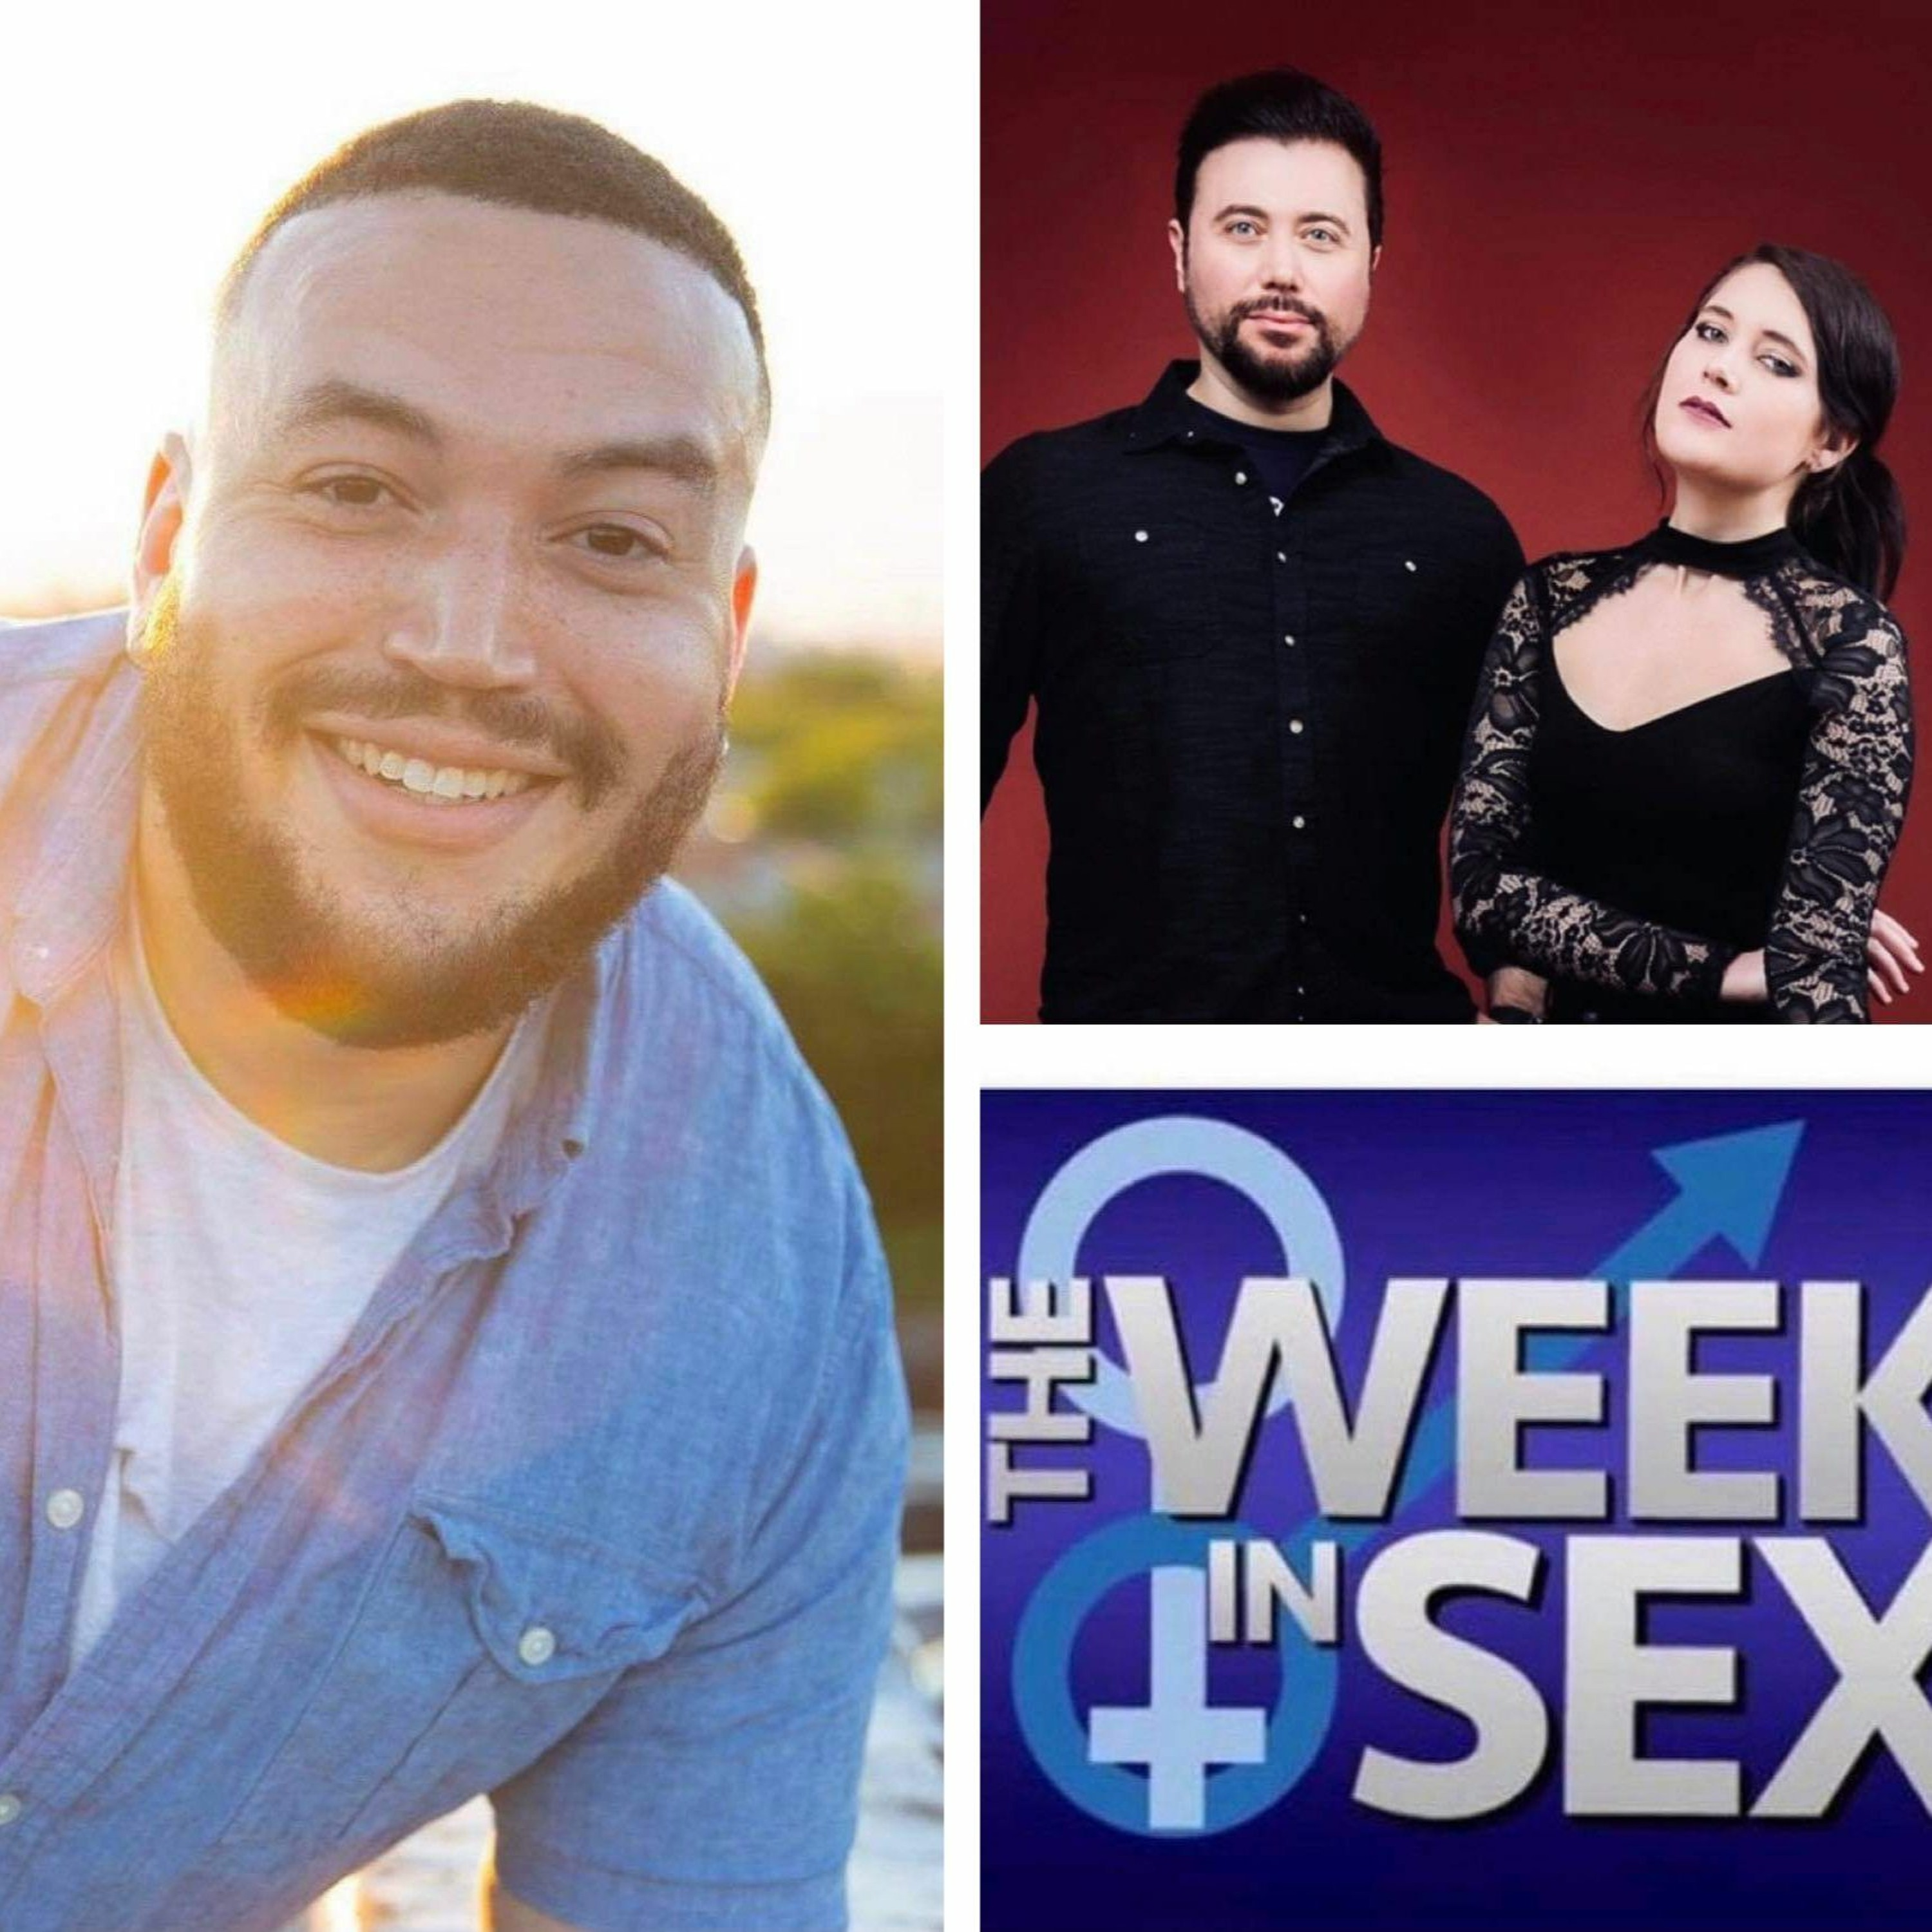 The Week In Sex - S6 E7 Comedian Christ Reiter's Kidnapping Story/Allan's Prop Comic Horrors